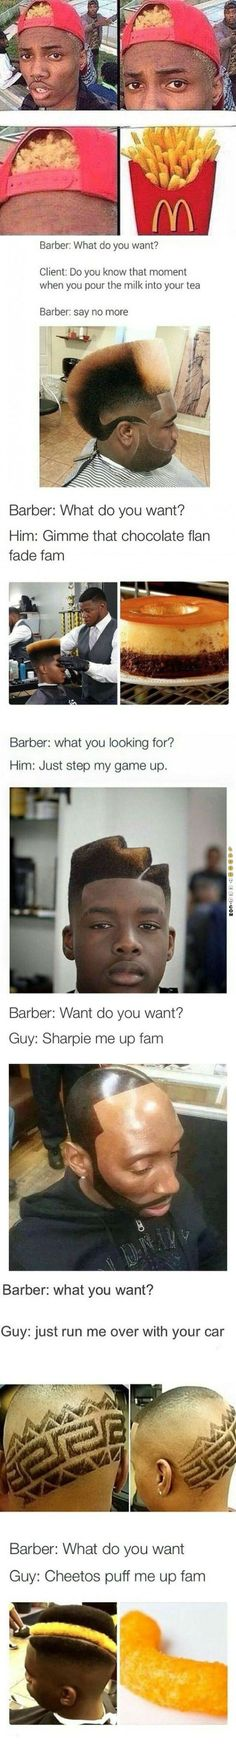 Funny haircuts. This barber is awesome.